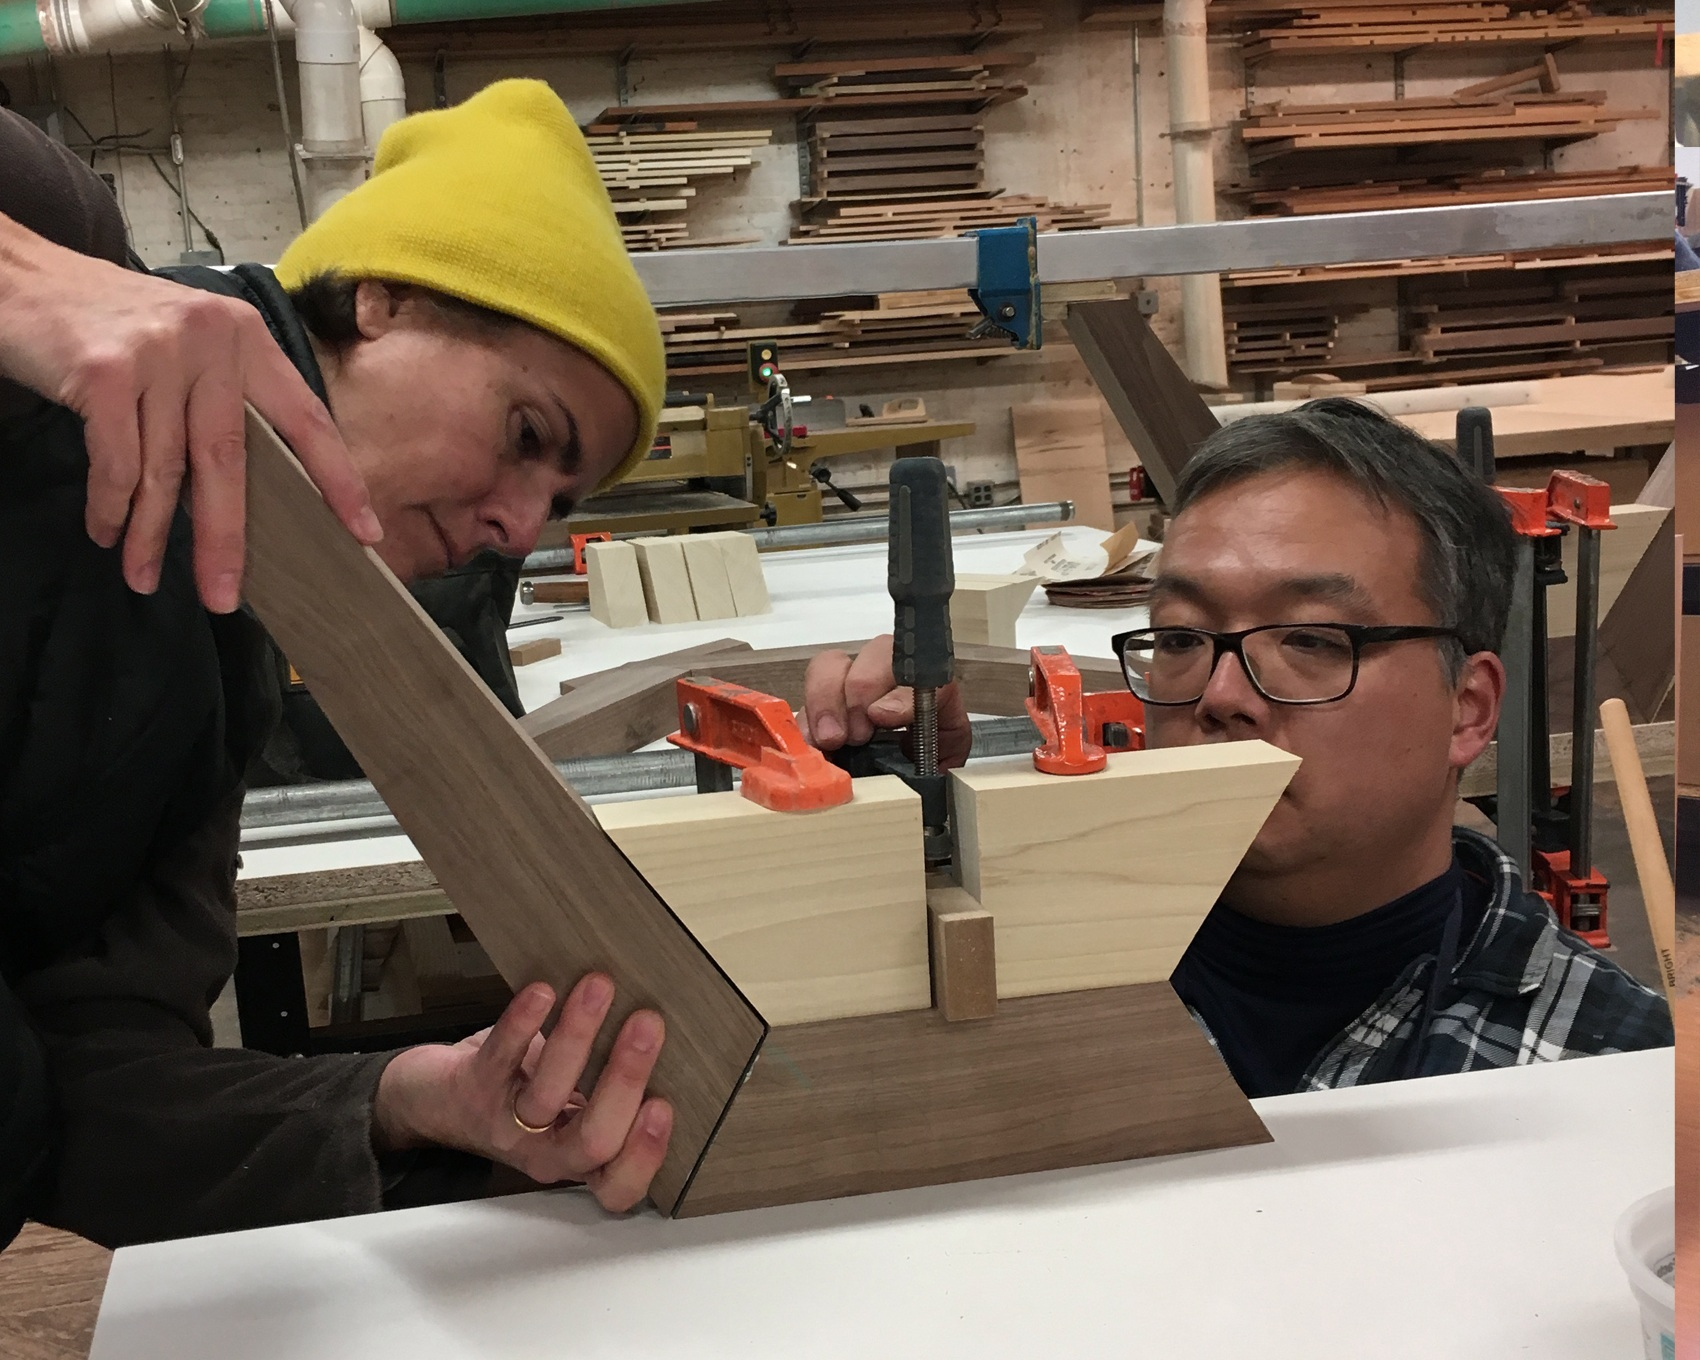 Classes - Classes are more in-depth courses in woodworking over a series of weeks to increase skills and knowledge. Students are guided through all machine set ups for safety and accuracy.